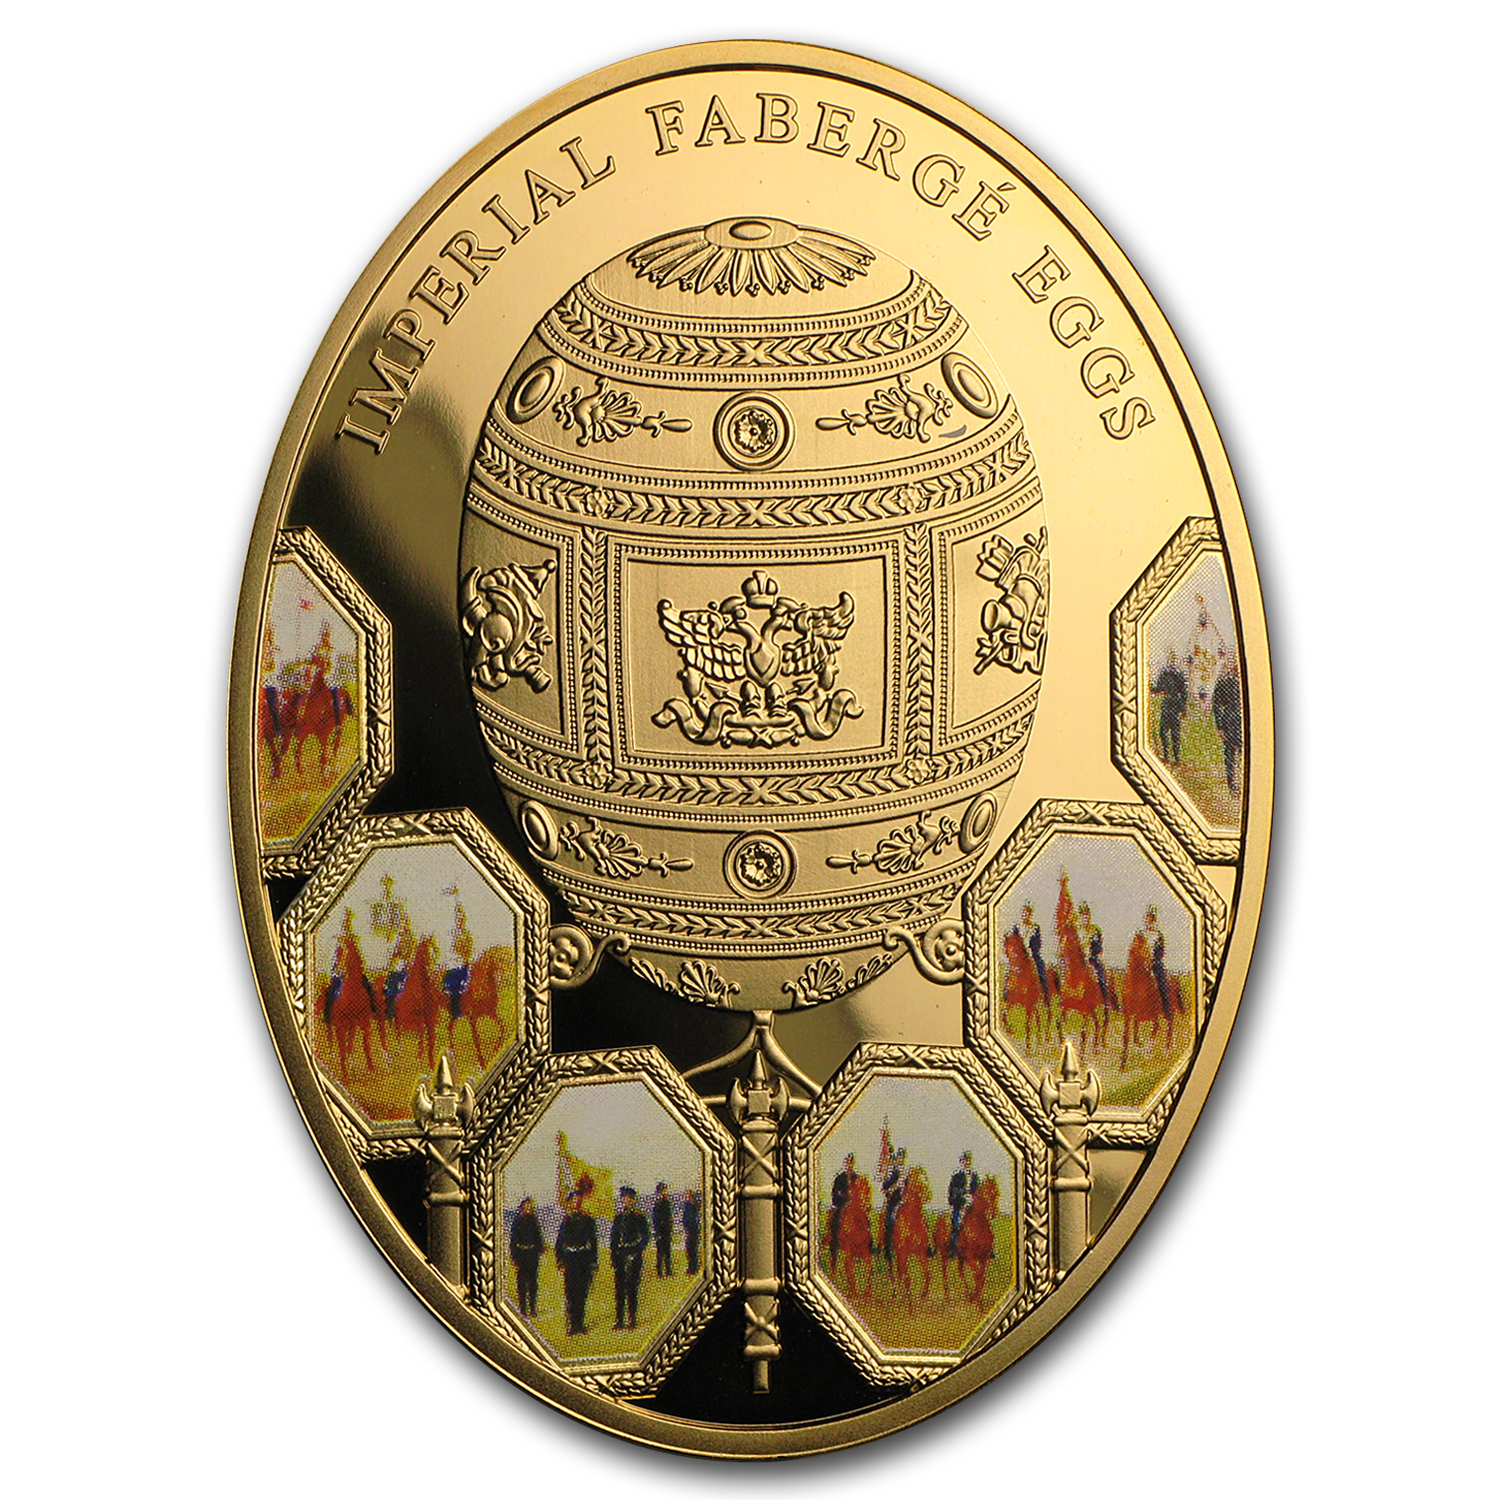 2012 Niue Proof Gold Imperial Fabergé Egg 100th Anniv War of 1812